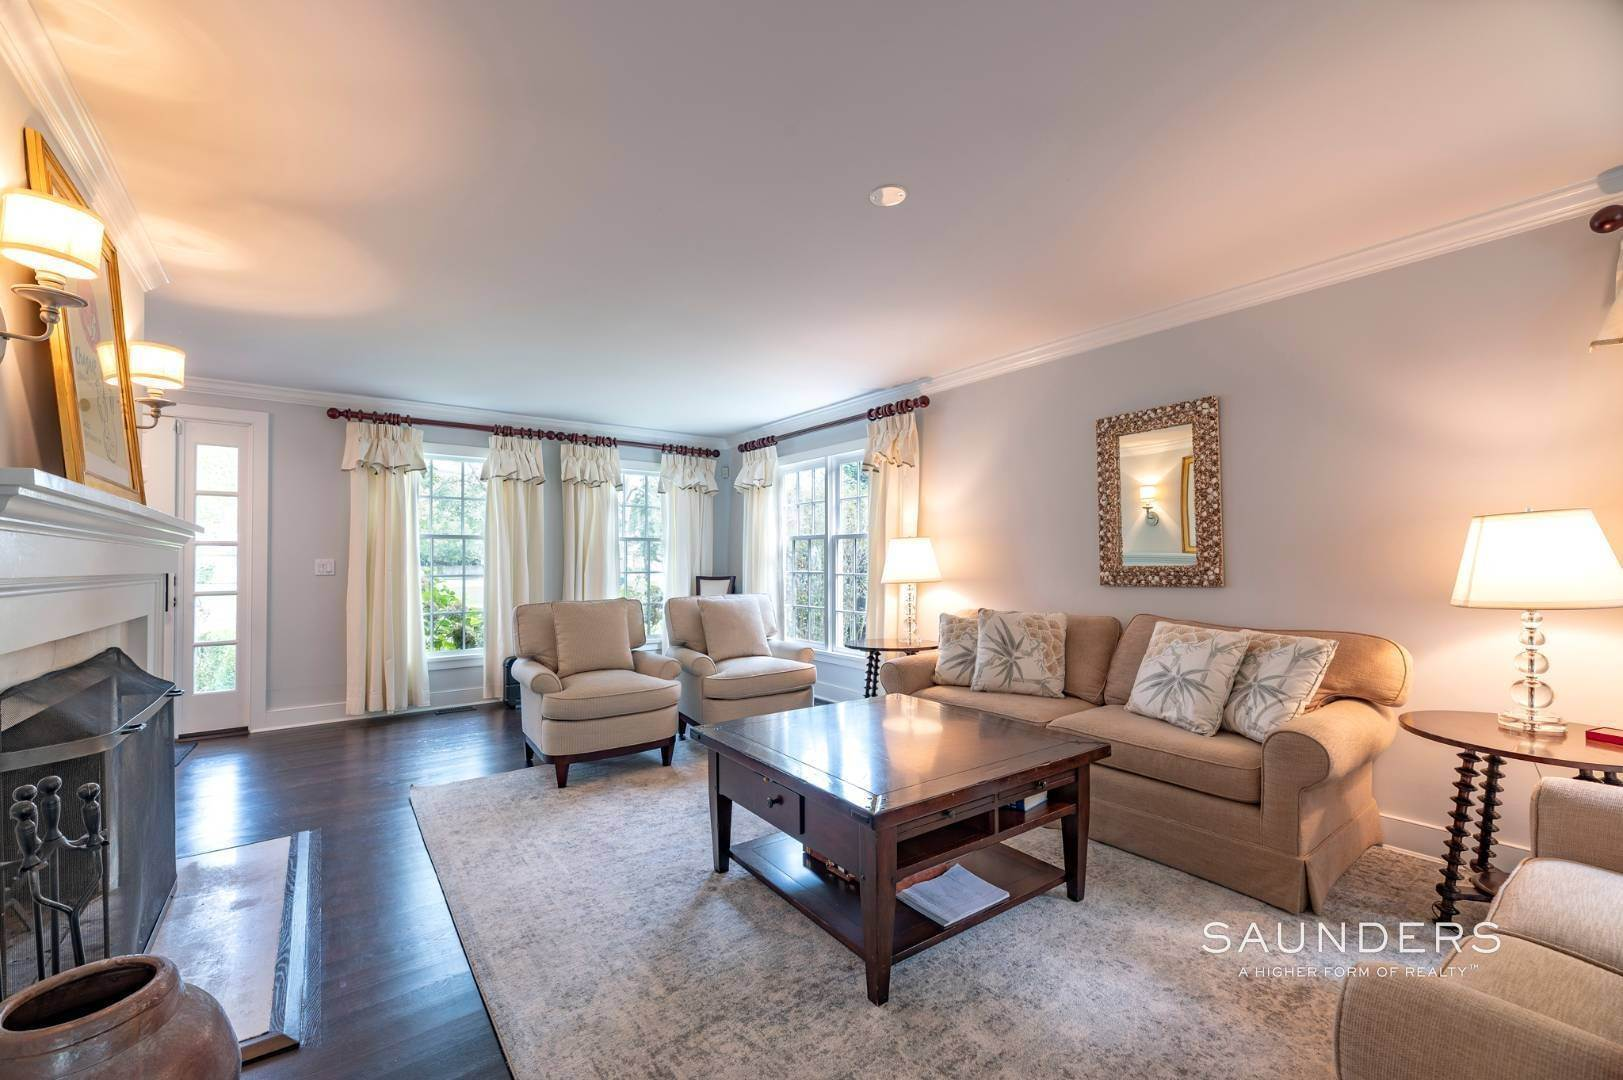 4. Single Family Homes for Sale at East Hampton Village Traditional South Of The Highway 21 Buckskill Road, East Hampton, East Hampton Town, NY 11937